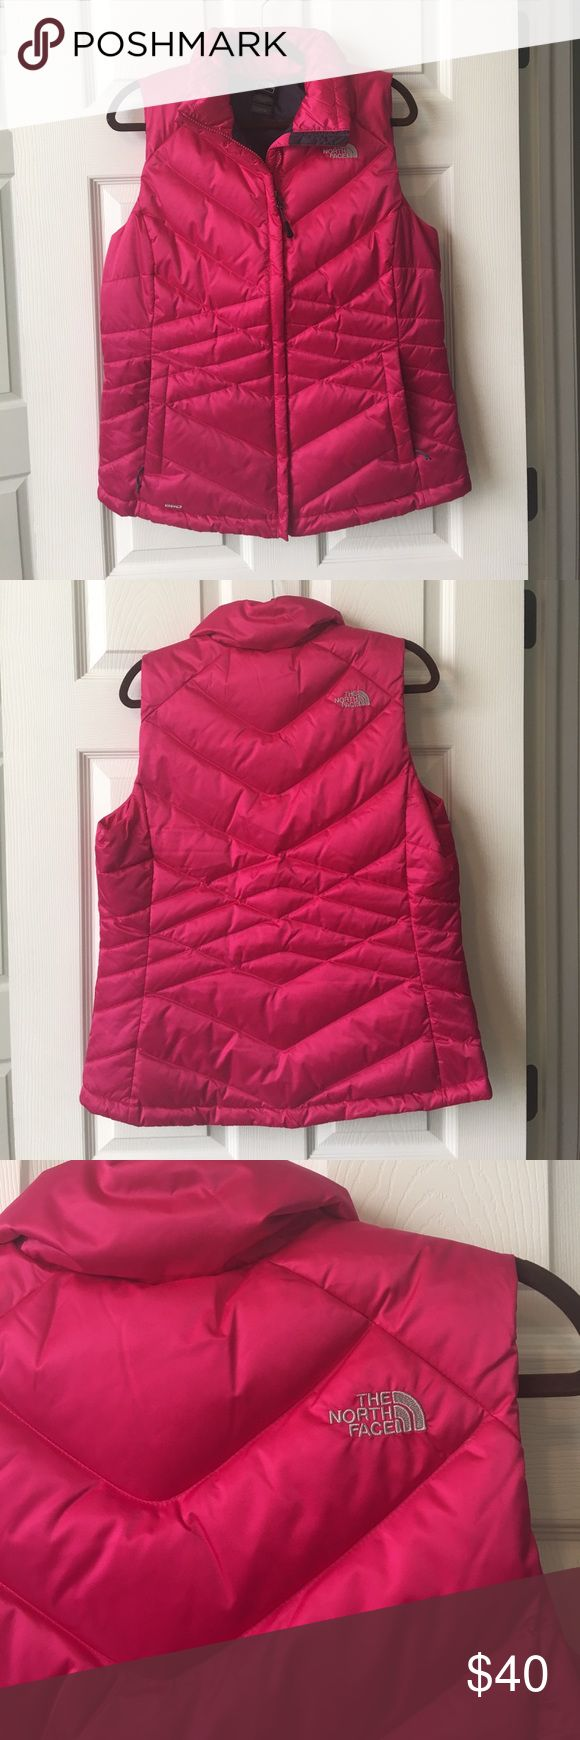 Vest from the North Face. Size L Beautiful deep pink vest from the North Face size Large. Worn once. Zipper works great and is very warm. Looks super cute with jeans and boots. Price is negotiable The North Face Jackets & Coats Vests